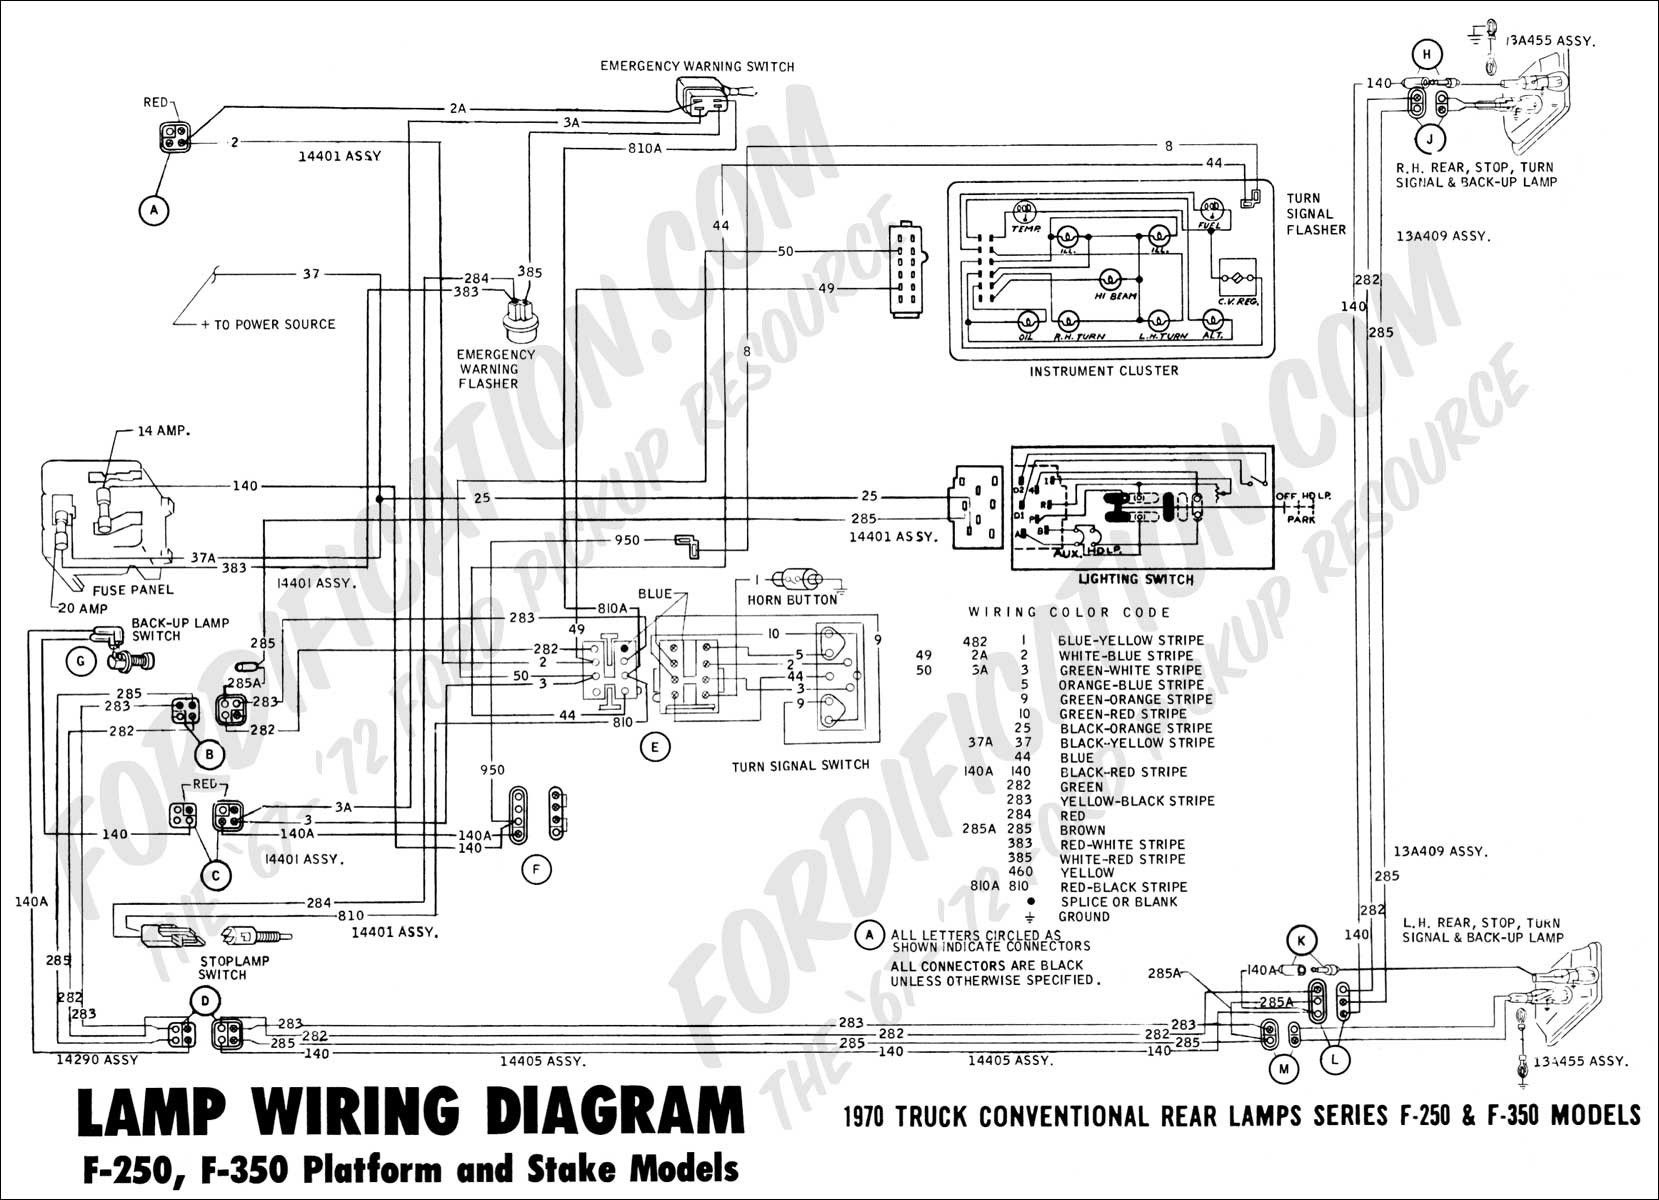 Ford F250 Wiring Diagram For Trailer Light - bookingritzcarlton.info |  Diagram, Ford lightning, Ford f250Pinterest